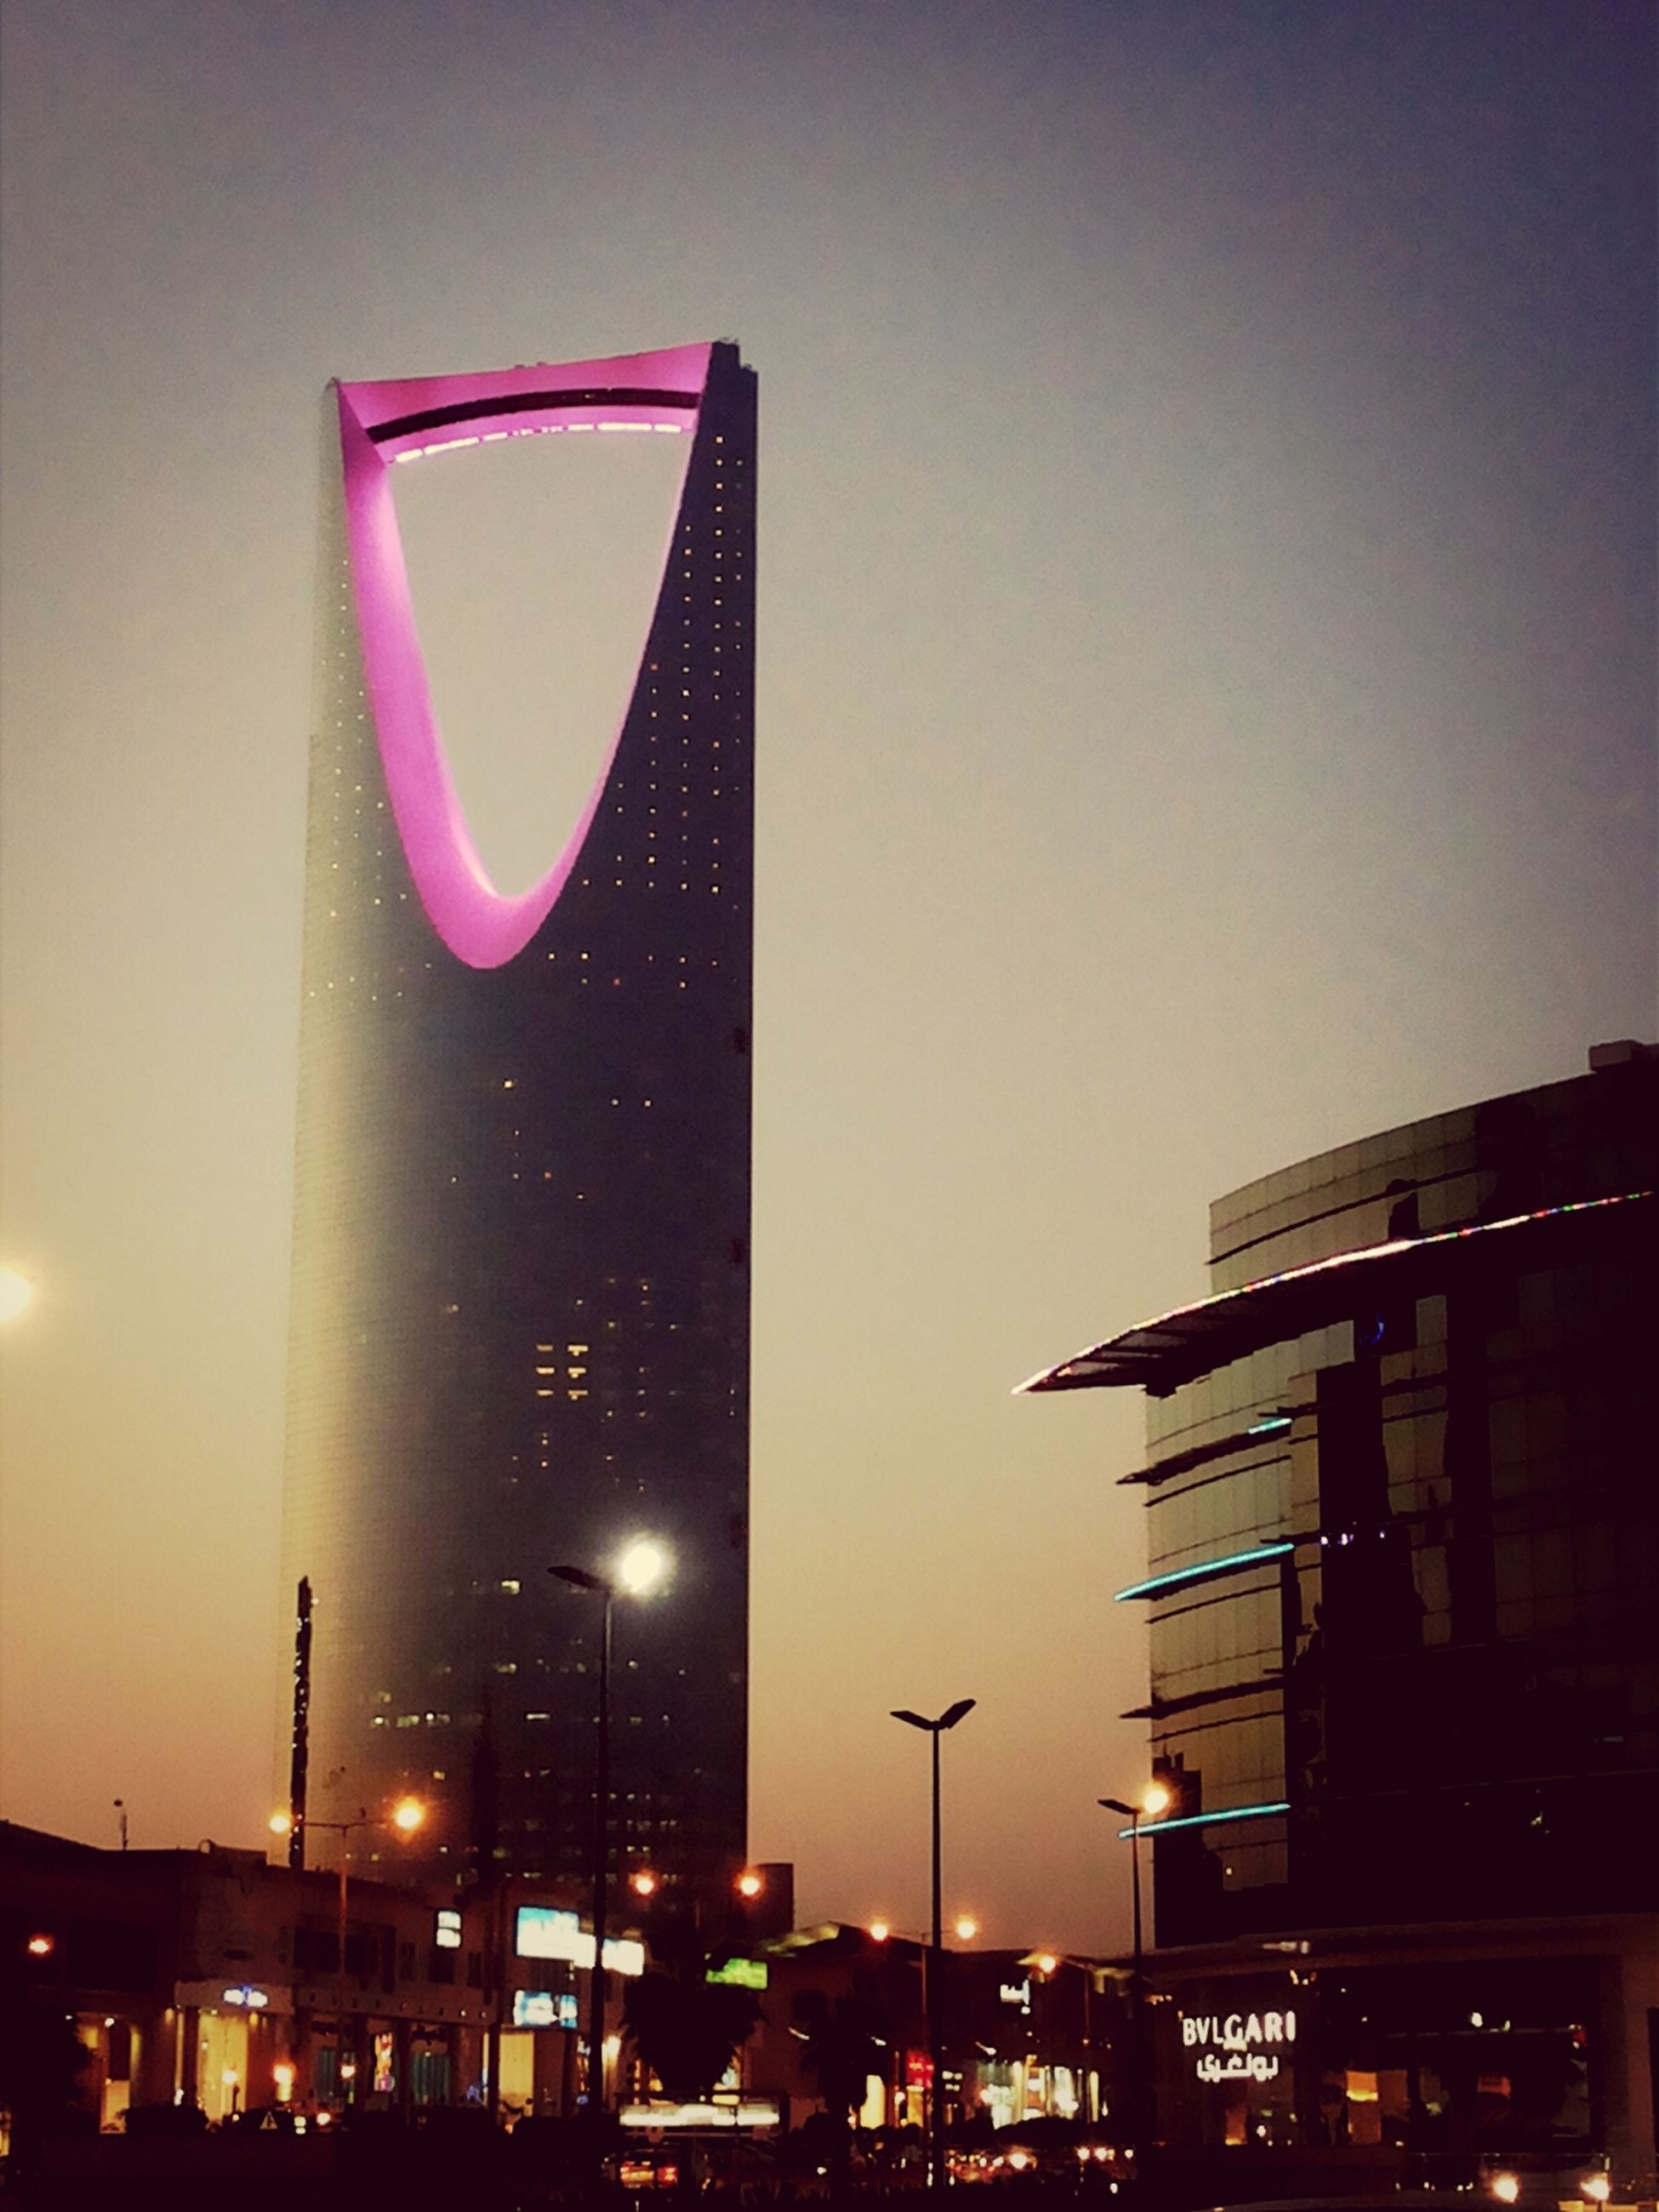 building exterior, architecture, built structure, low angle view, city, illuminated, building, clear sky, sky, night, street light, city life, dusk, road signal, modern, outdoors, skyscraper, communication, lighting equipment, office building